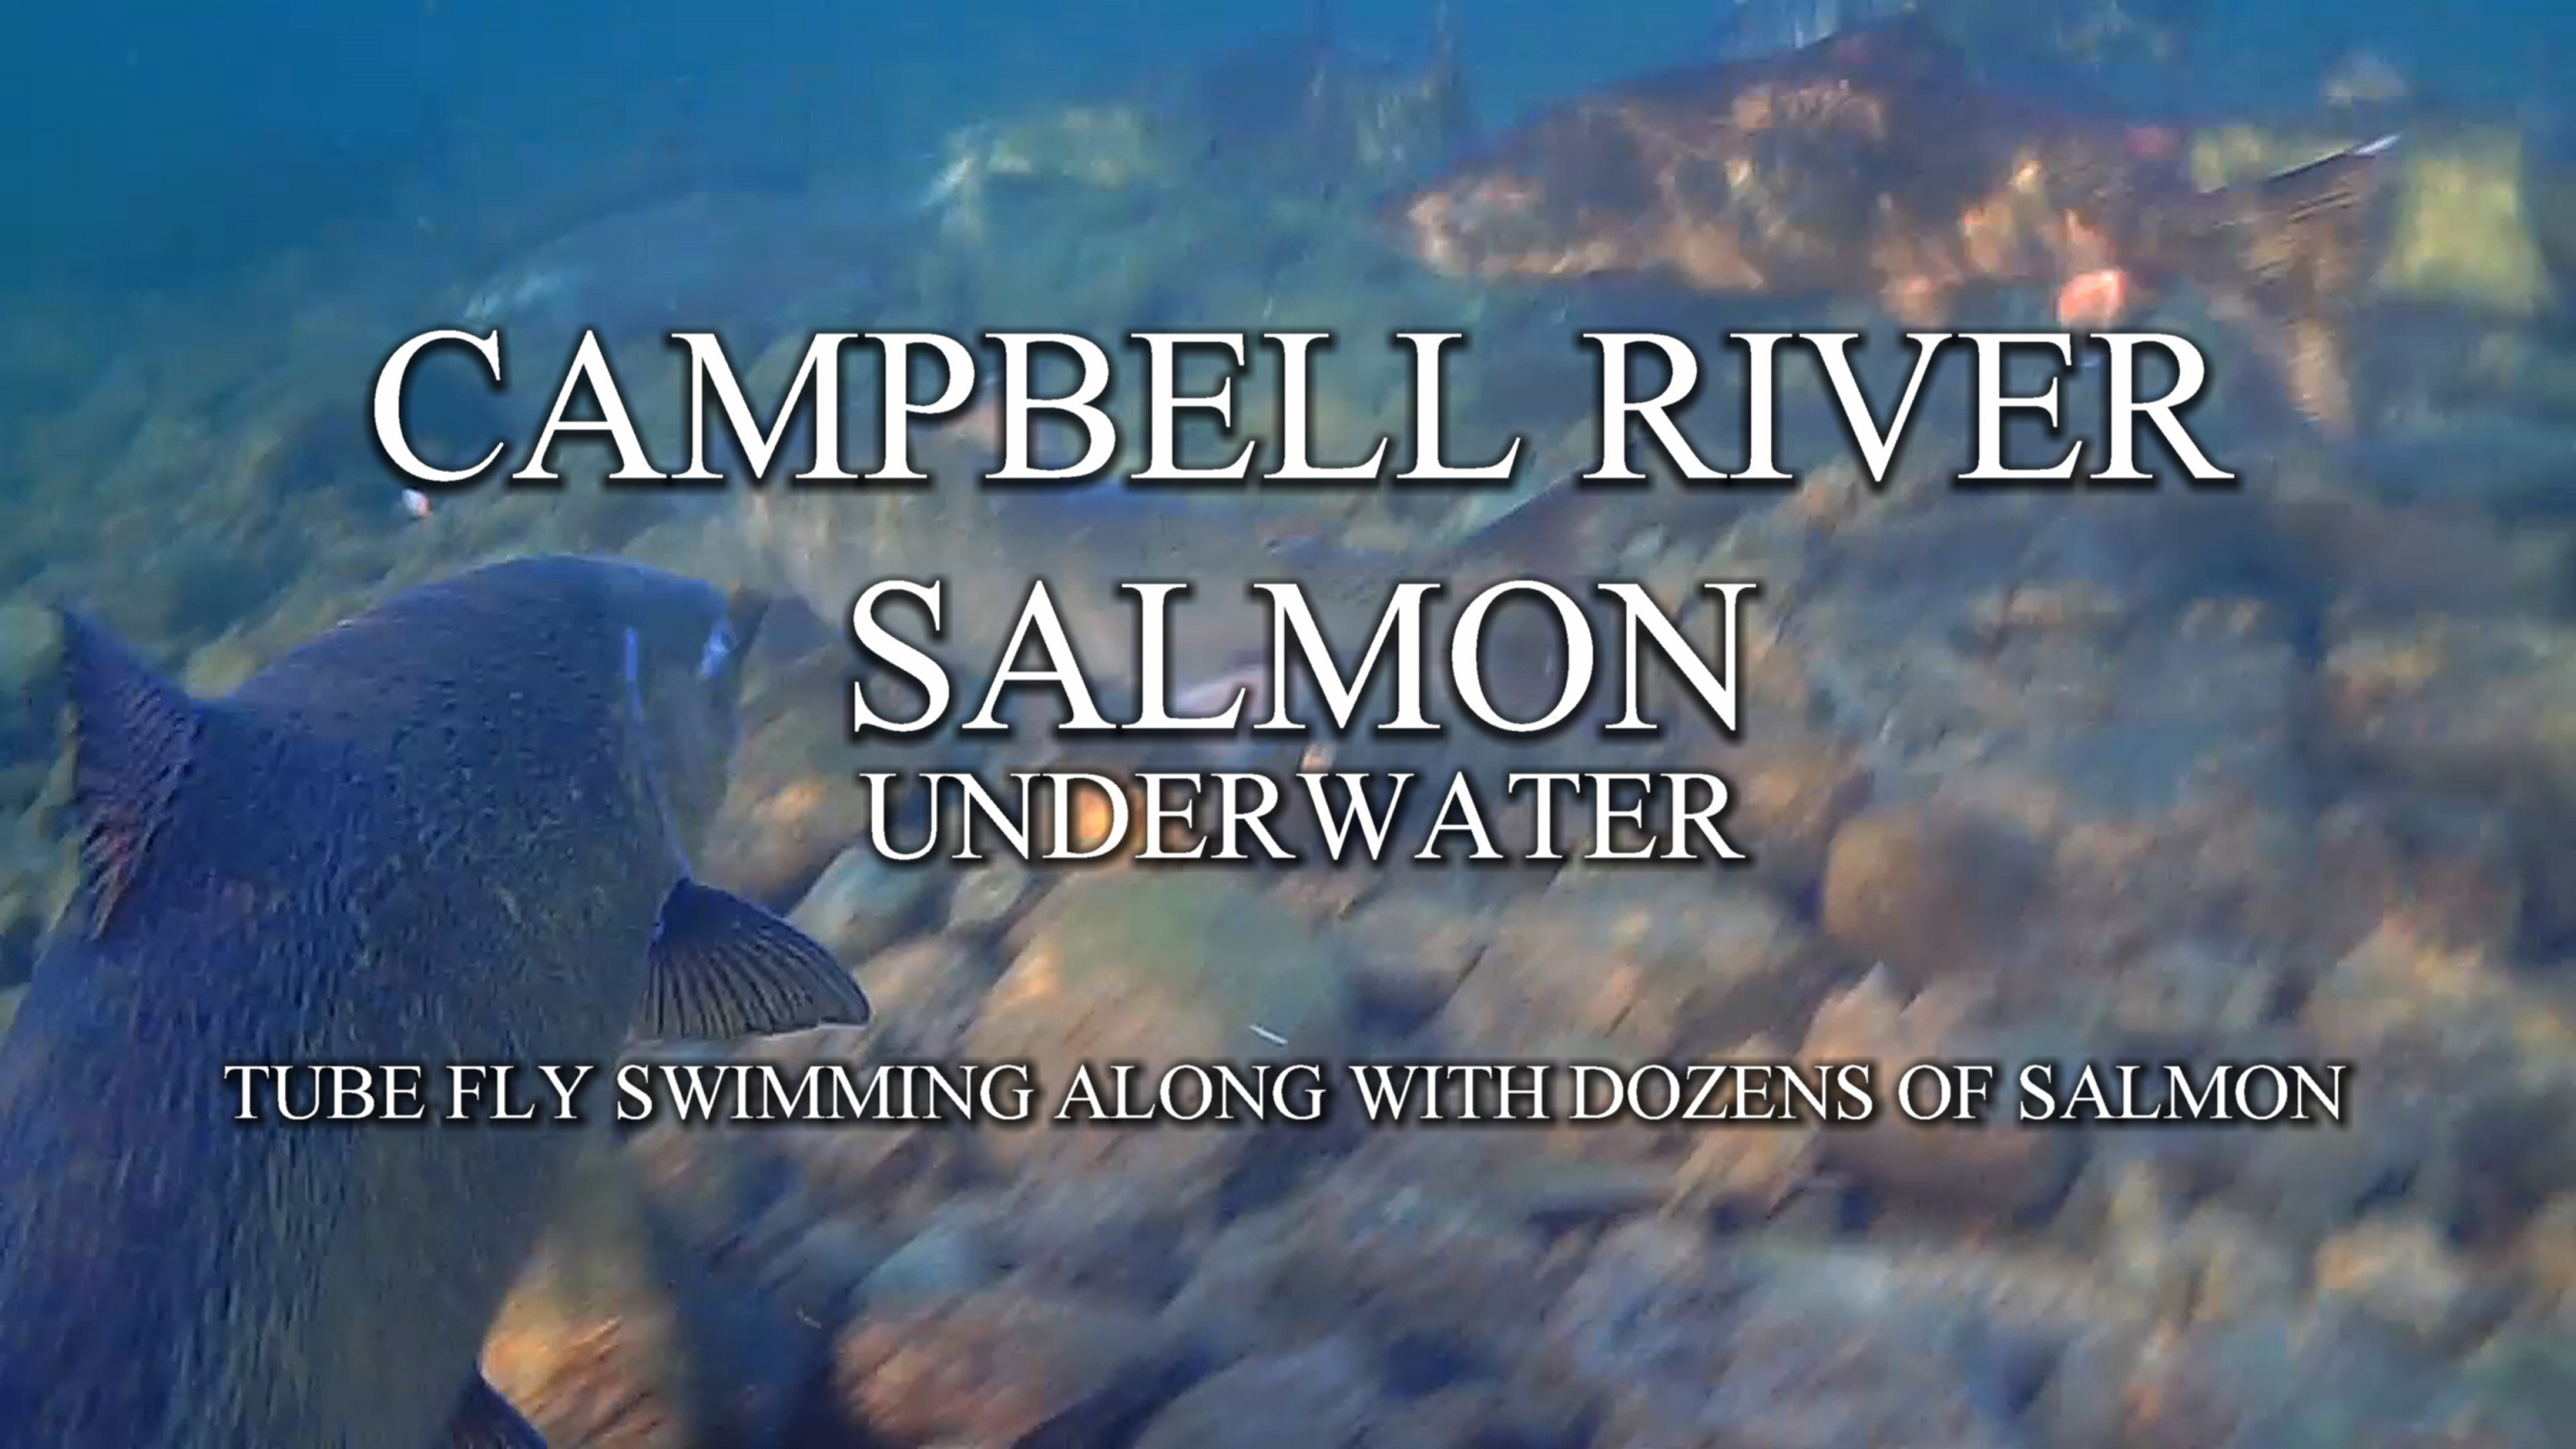 CAMPBELL RIVER SALMON in UNDERWATER camera with RiverBug TUBE FLY. Check River Ranger tube channels footage where RiverBug tube fly is swimming along dozens of King Salmon! #campbellriver #campbellriversalmon #tubefly #tubfluga #tubeflue #underwater #putkiperhot